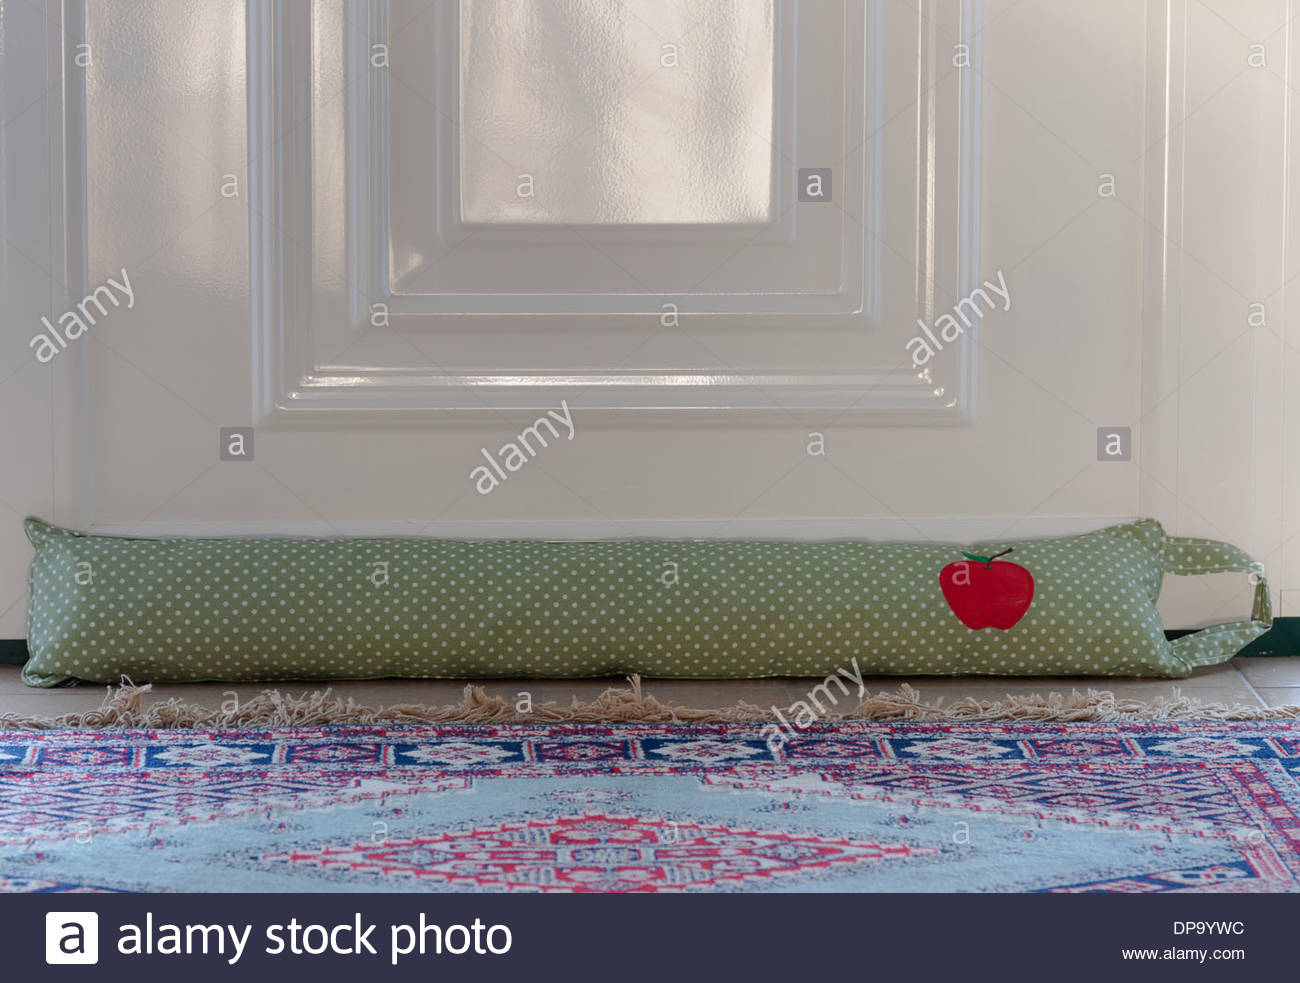 draught excluder against a door - Stock Image